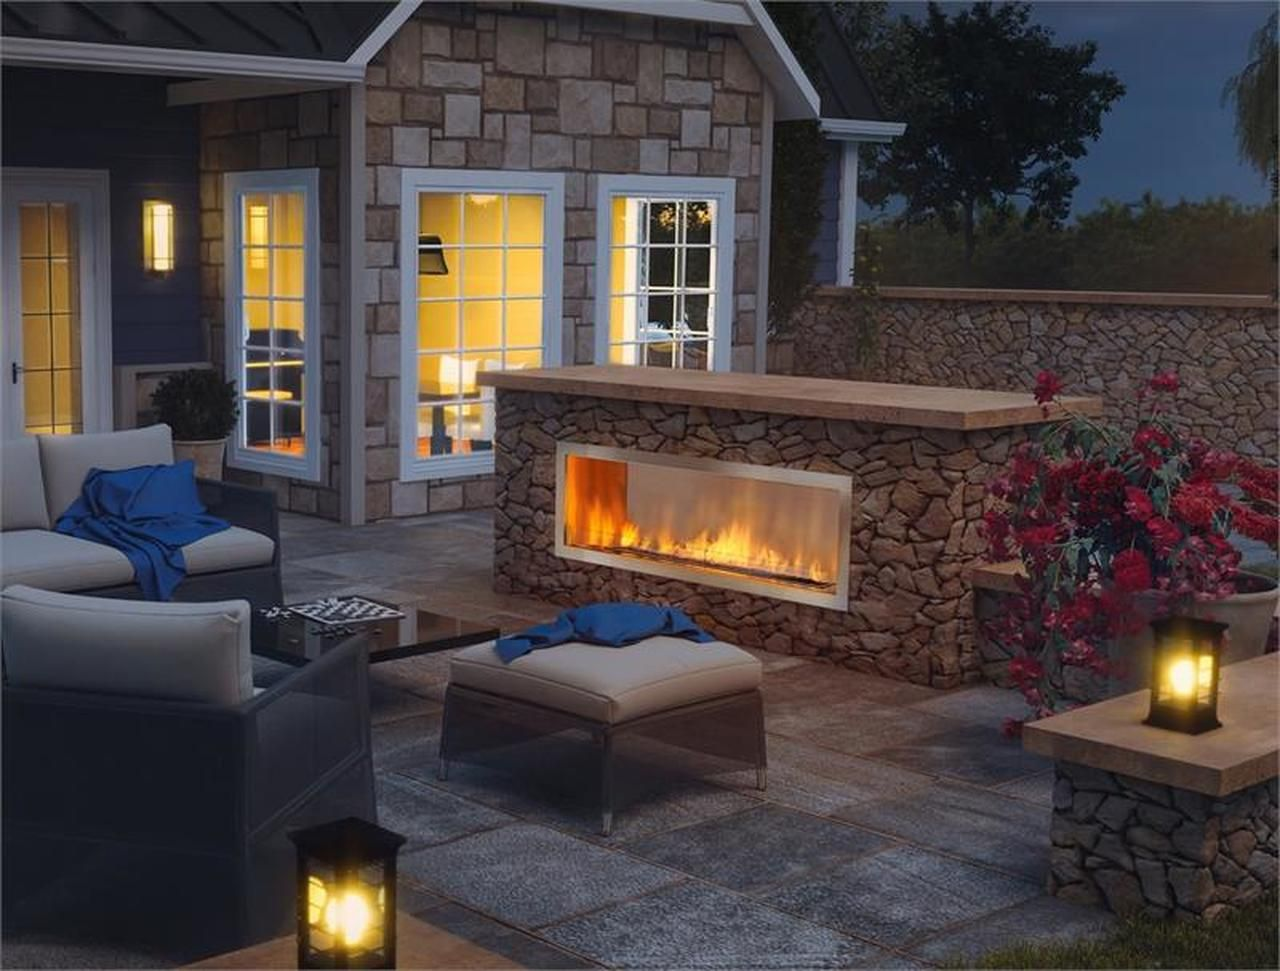 60 Outdoor Linear Gas Fireplace Outdoor Gas Fireplace Backyard Fireplace Outdoor Fireplace Designs